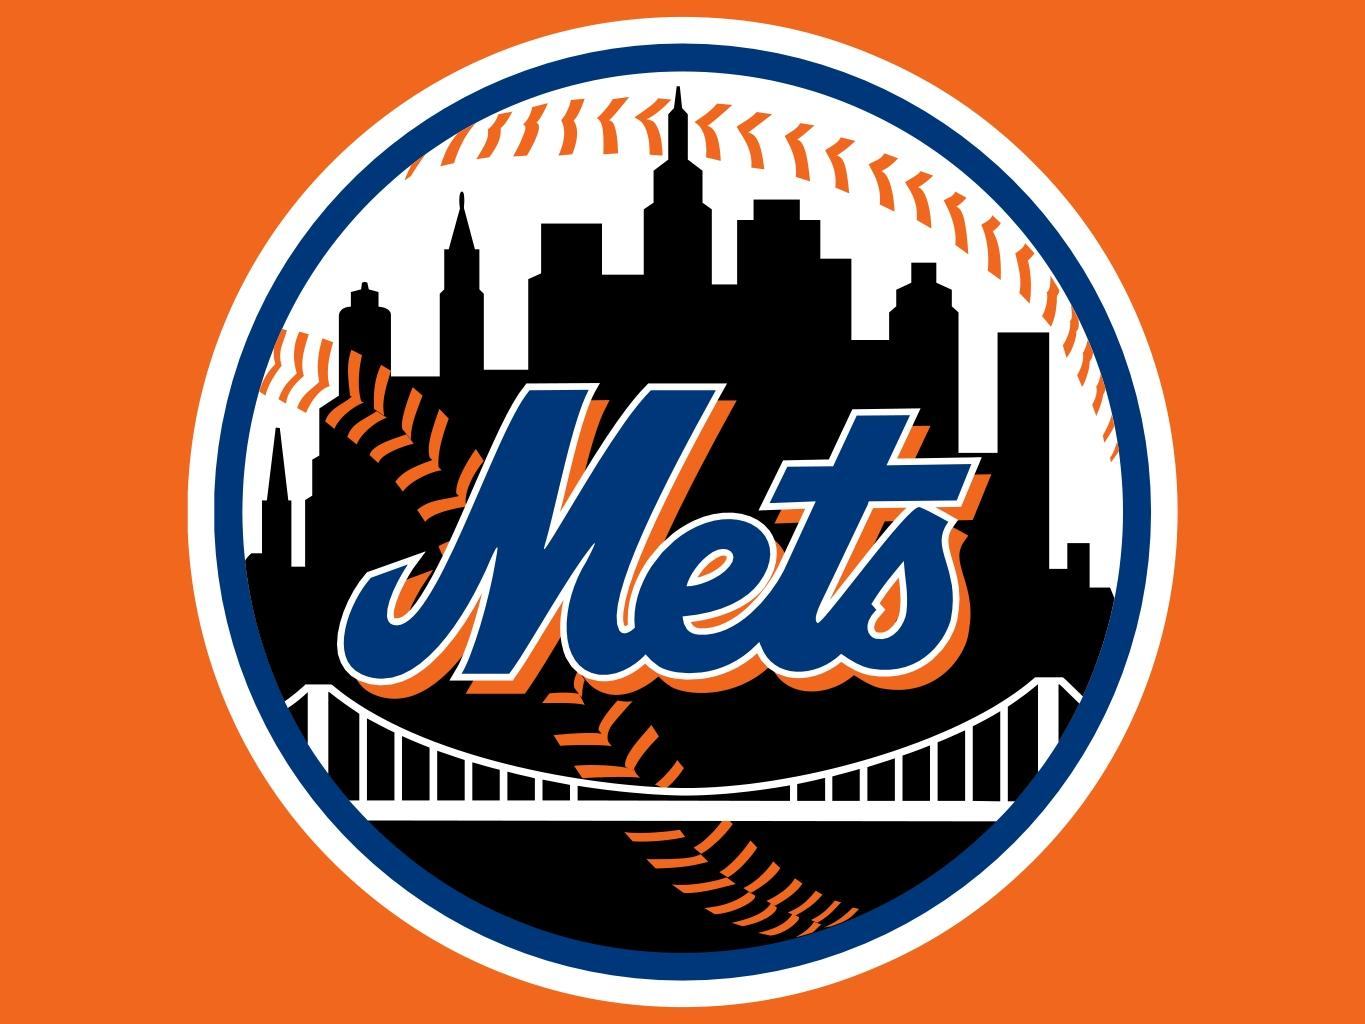 http://www.sports-logos-screensavers.com/user/New_York_Mets2.jpg